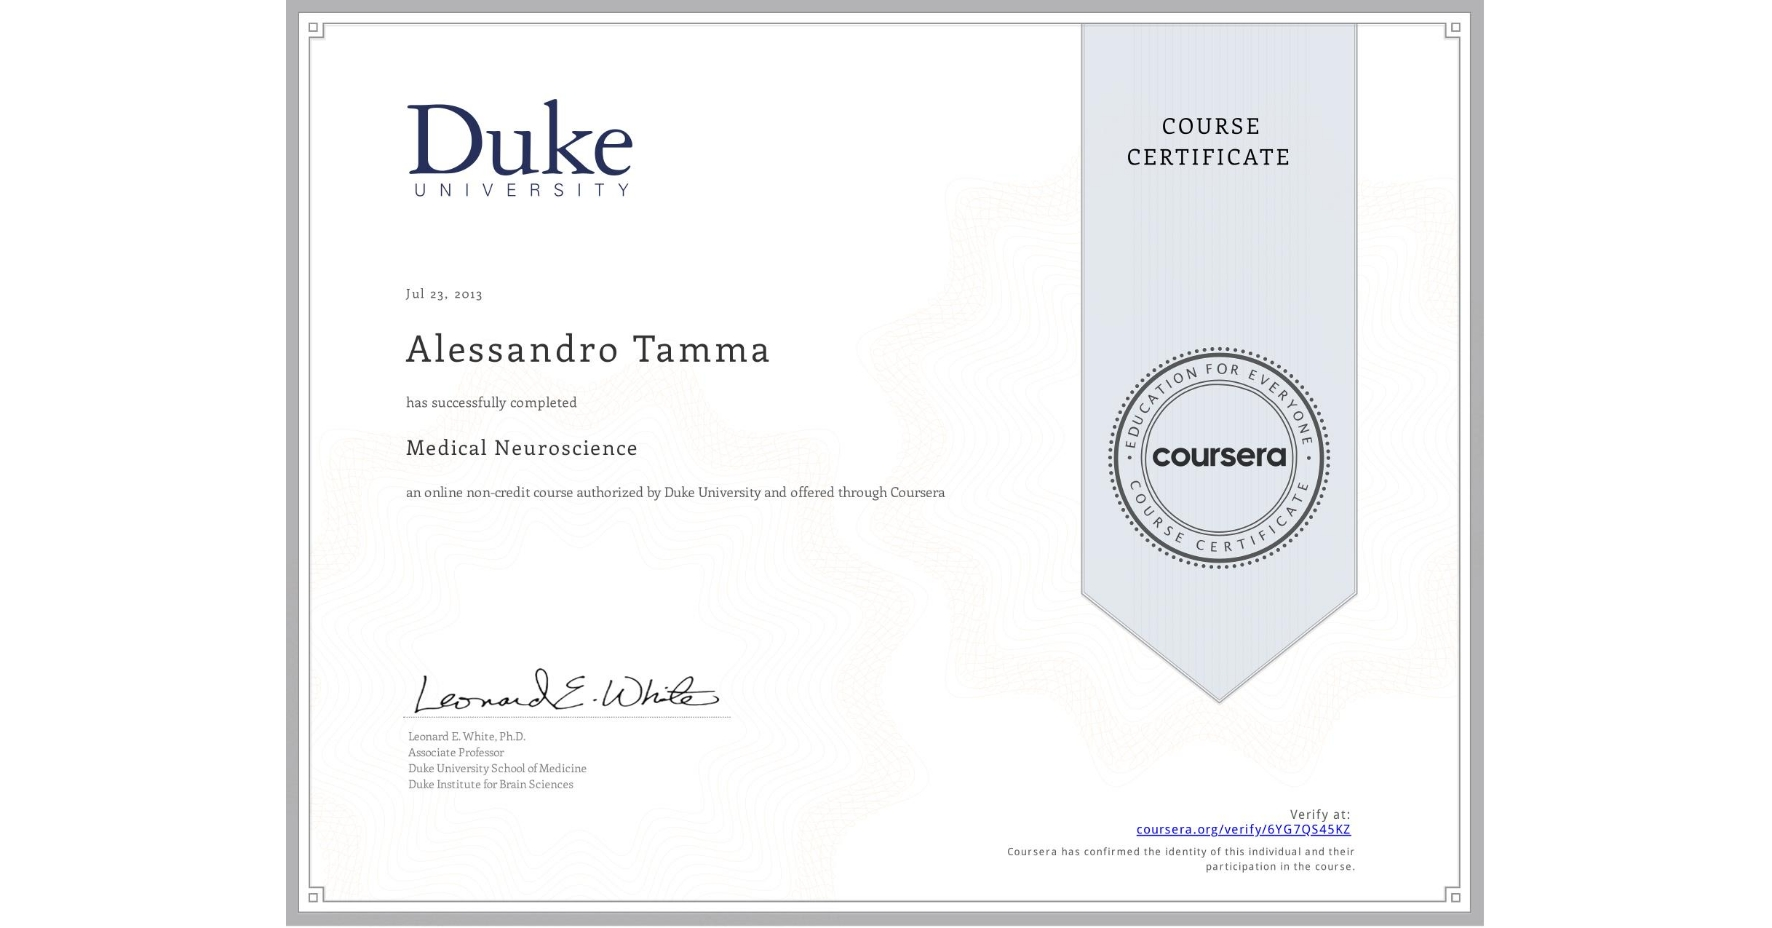 View certificate for Alessandro Tamma, Medical Neuroscience, an online non-credit course authorized by Duke University and offered through Coursera